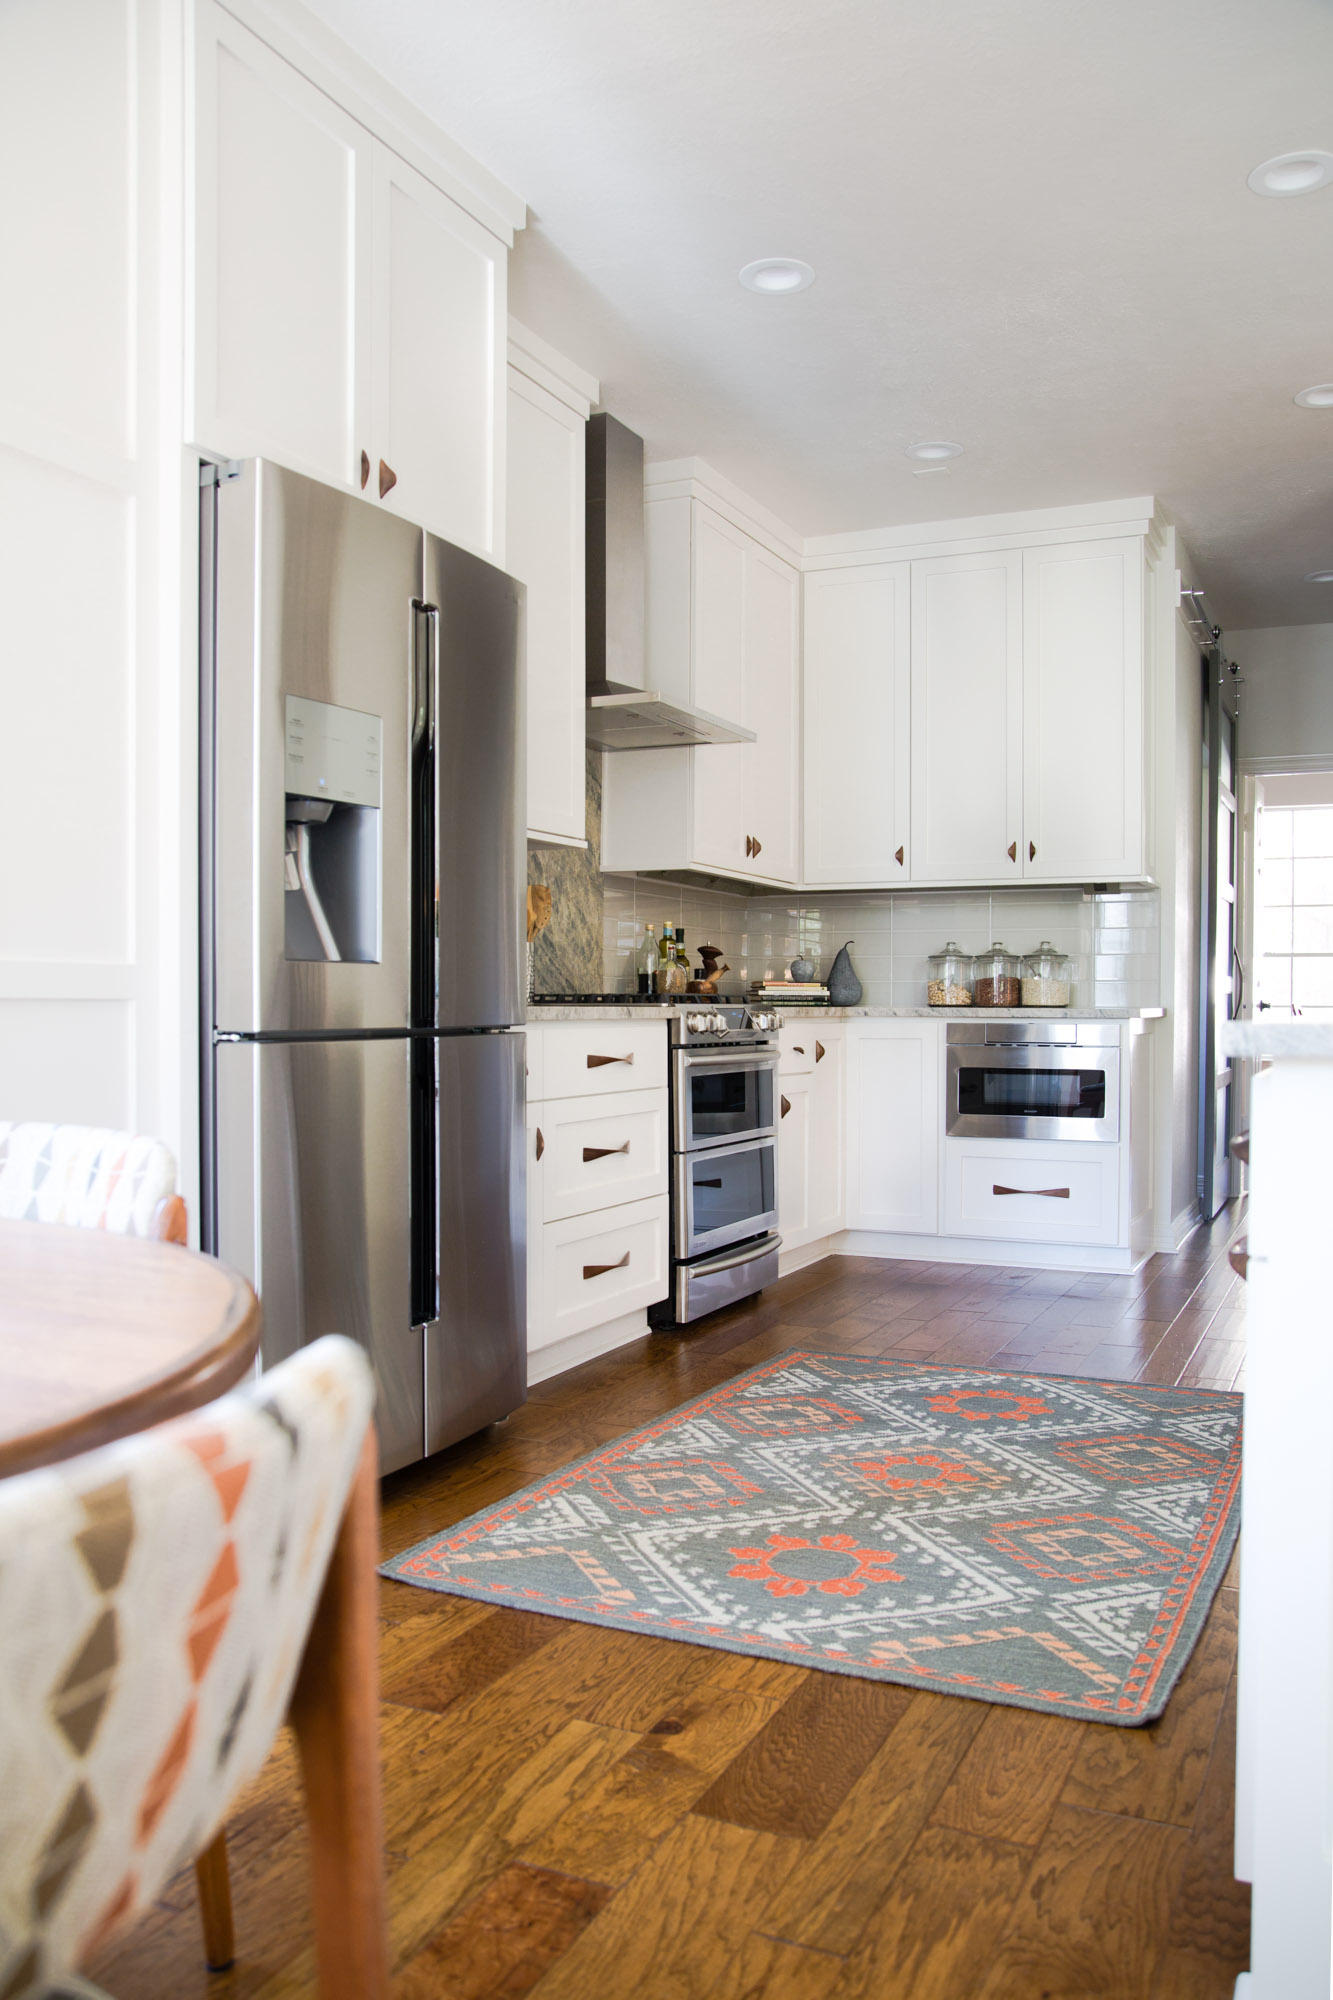 Simple white kitchen remodel with quartzite countertops, wood floors, and wood cabinet pulls | Carla Aston, Designer | Tori Aston, Photographer #whitekitchen #midcenturystyle #quartzitecountertops #kitchenremodel #kitchenremodelideas #kitchenrug